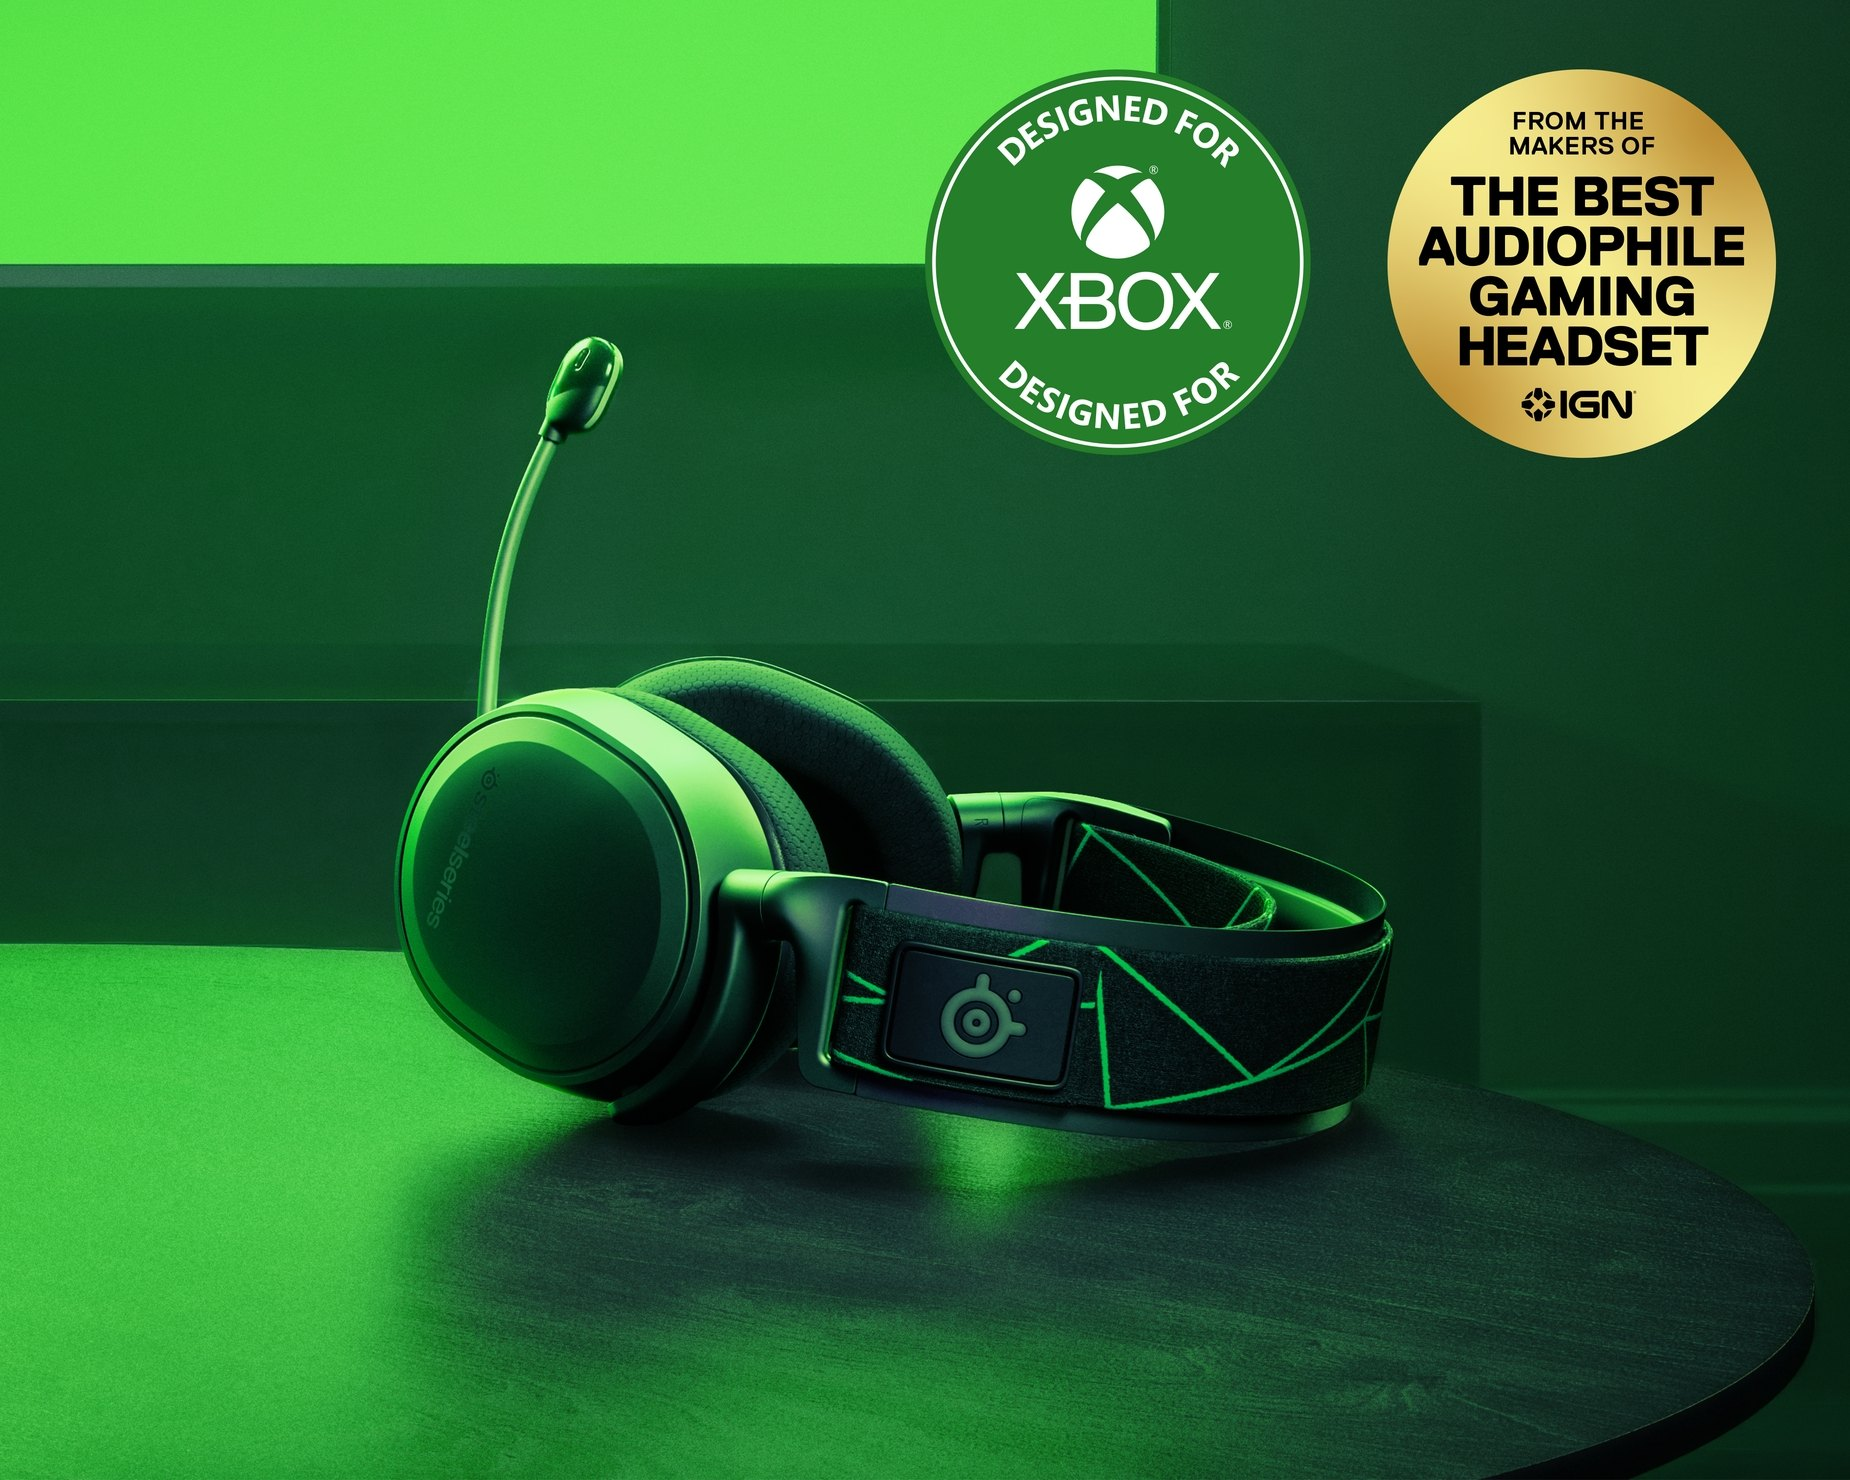 Image of headset laying flat on a table with a signature Xbox color glow visible